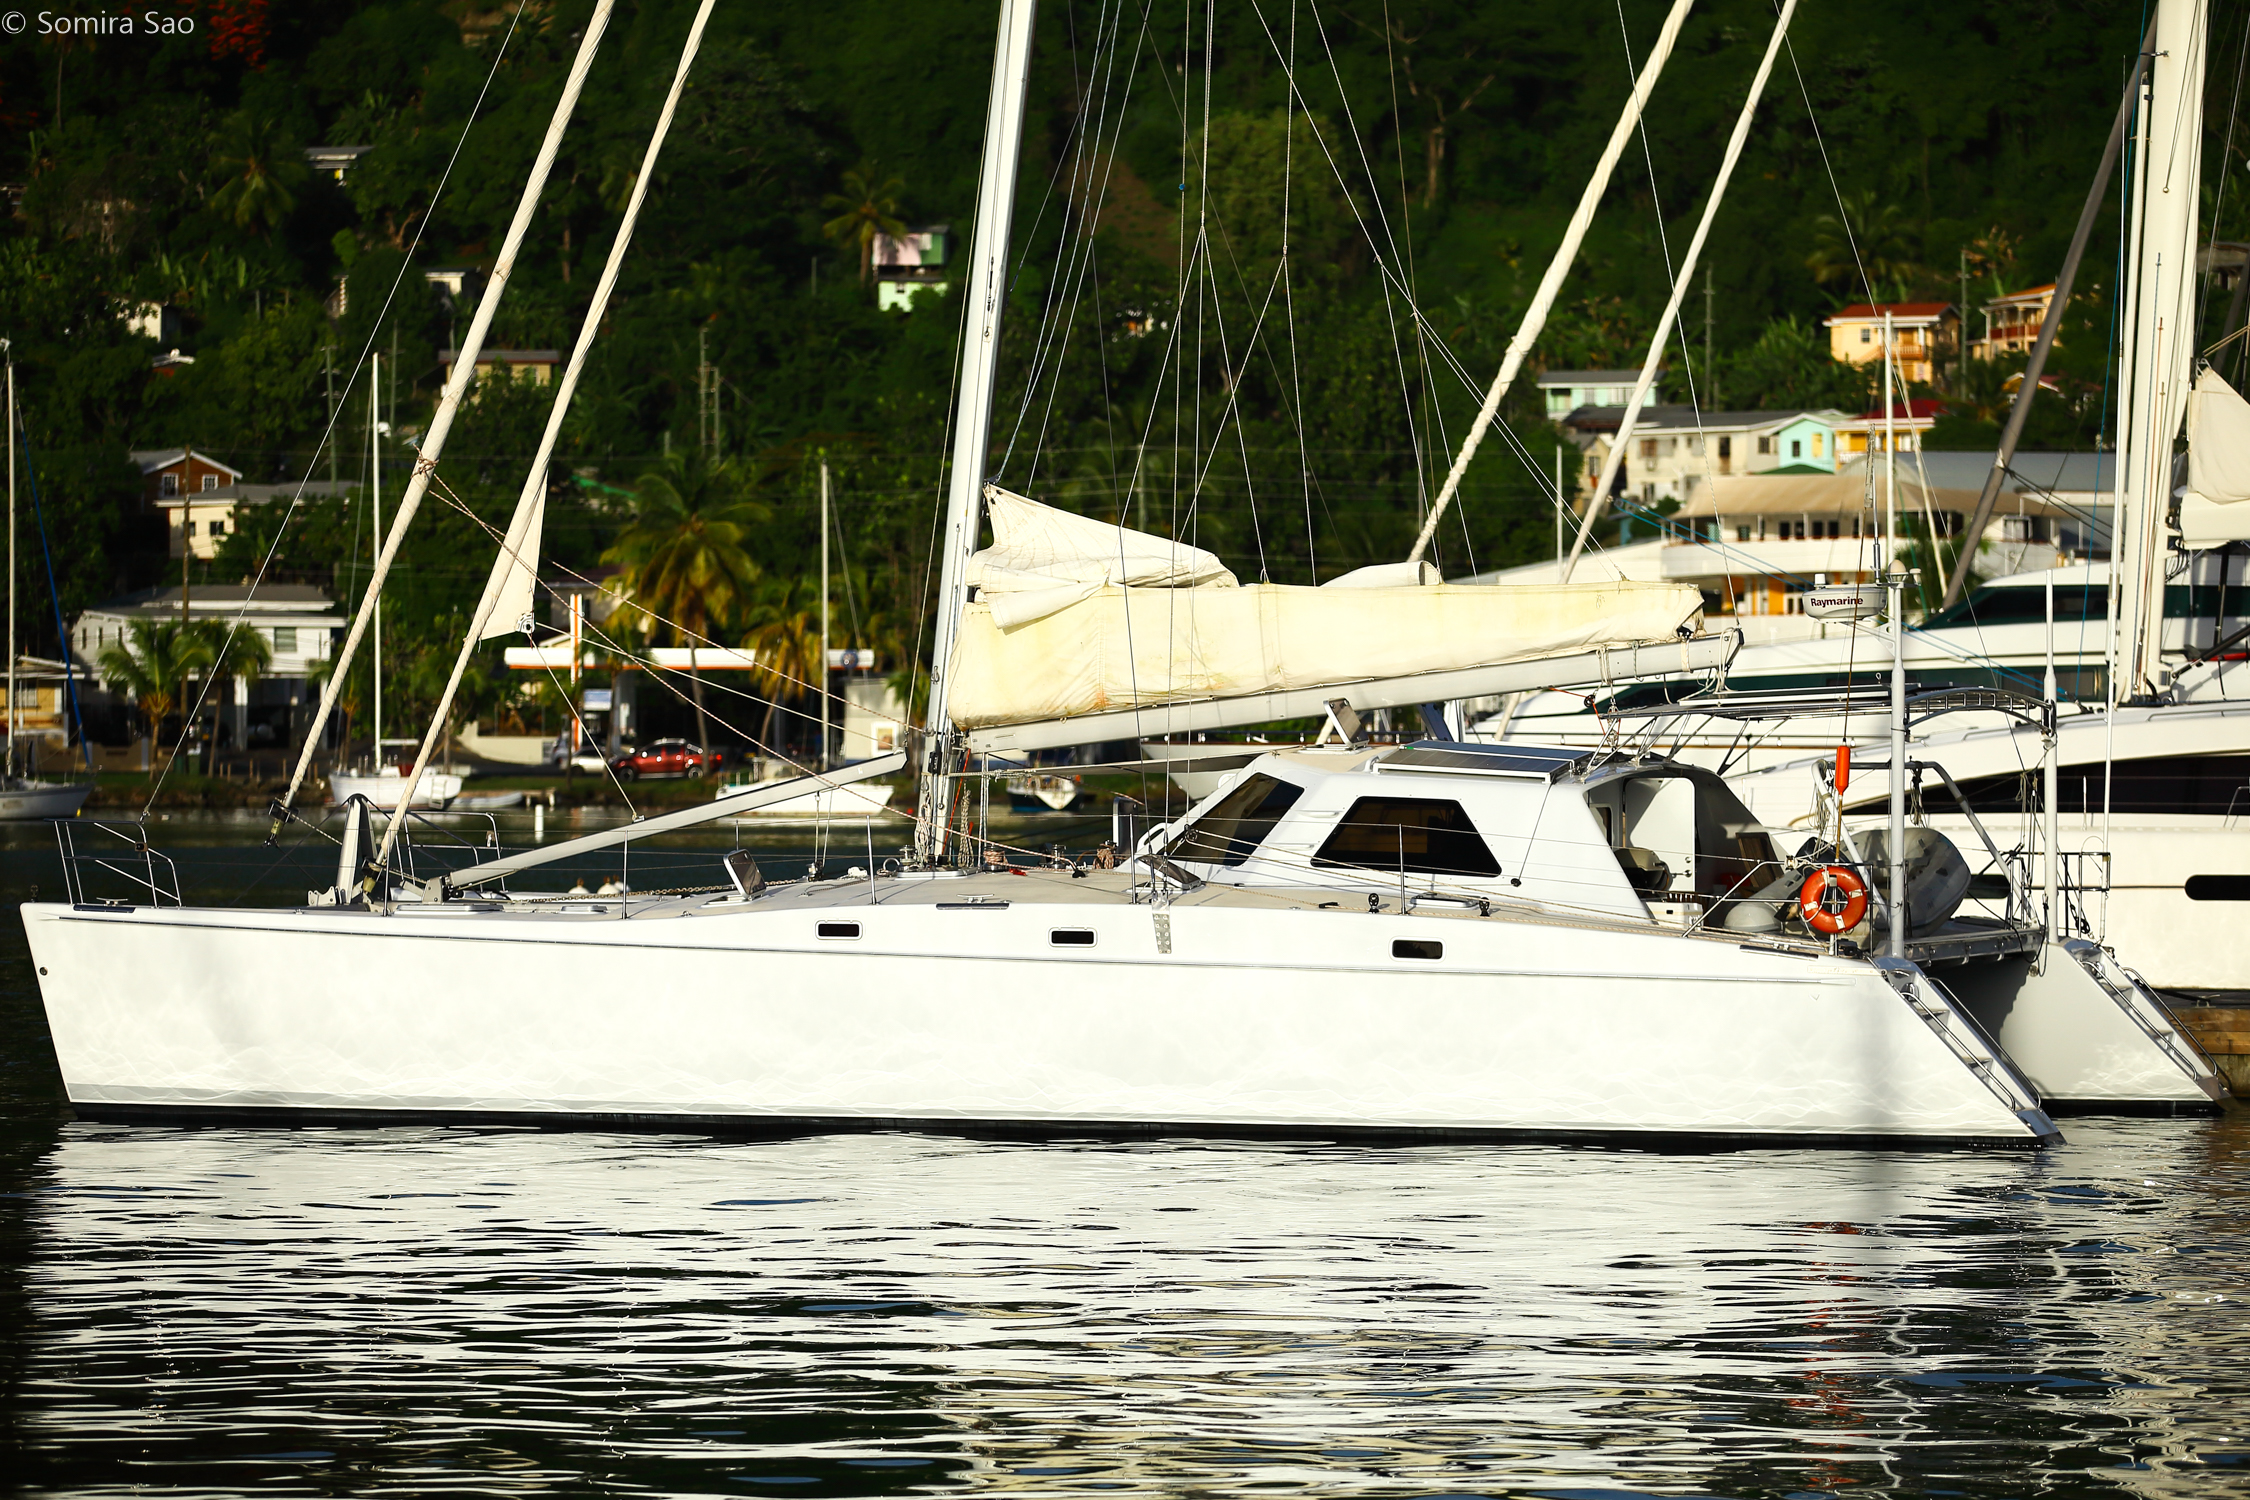 Segue 2003 55 Atlantic Cat  August 2018  re-commissions  Sea trials  Jan-June major refit of all systems, goals: lighter stronger simpler, less maintenance and more fun to sail